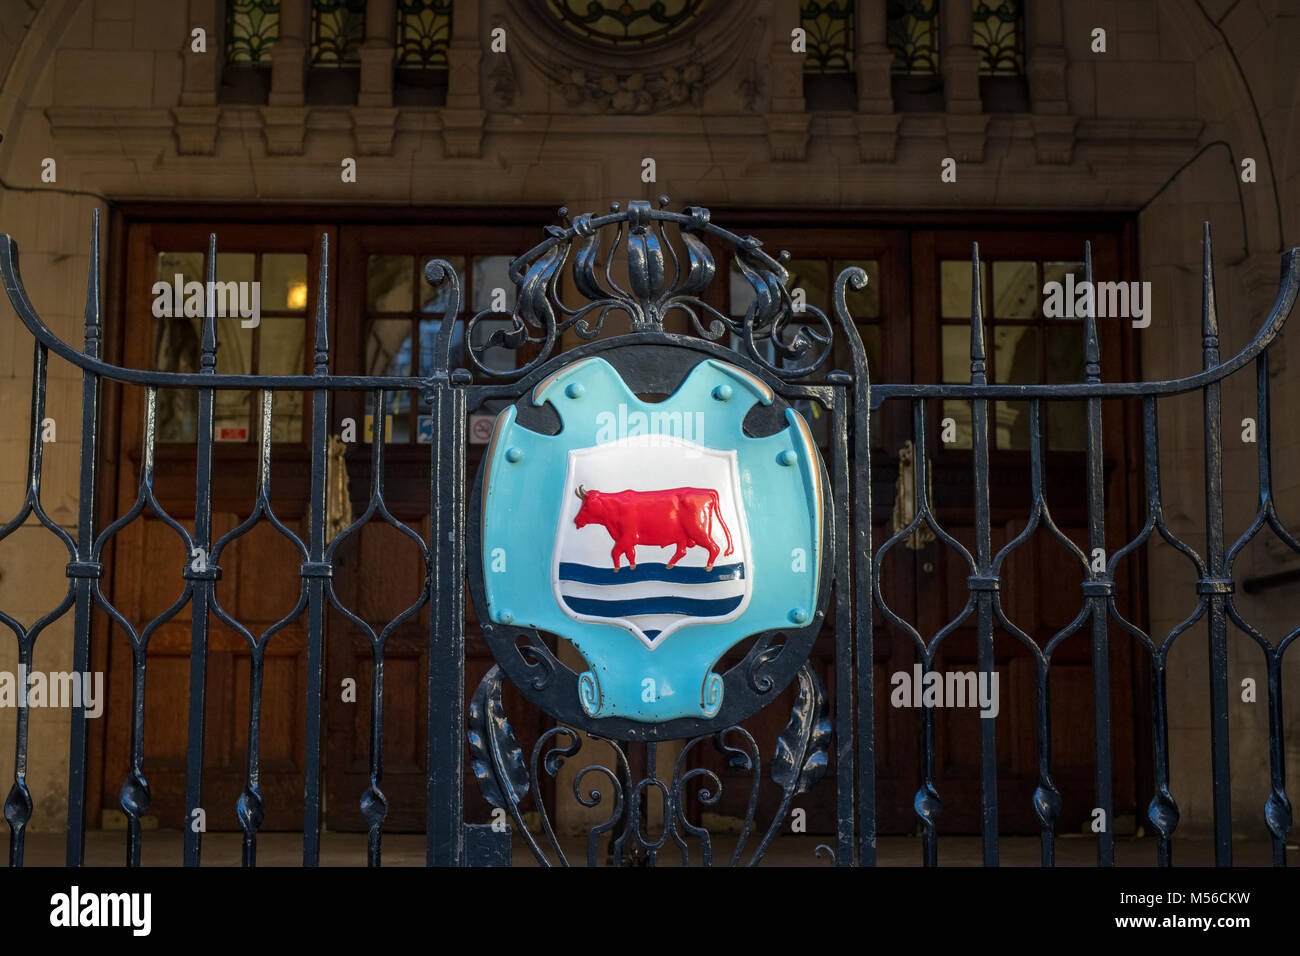 Oxford coat of arms on town hall gate. Oxford, Oxfordshire, England - Stock Image